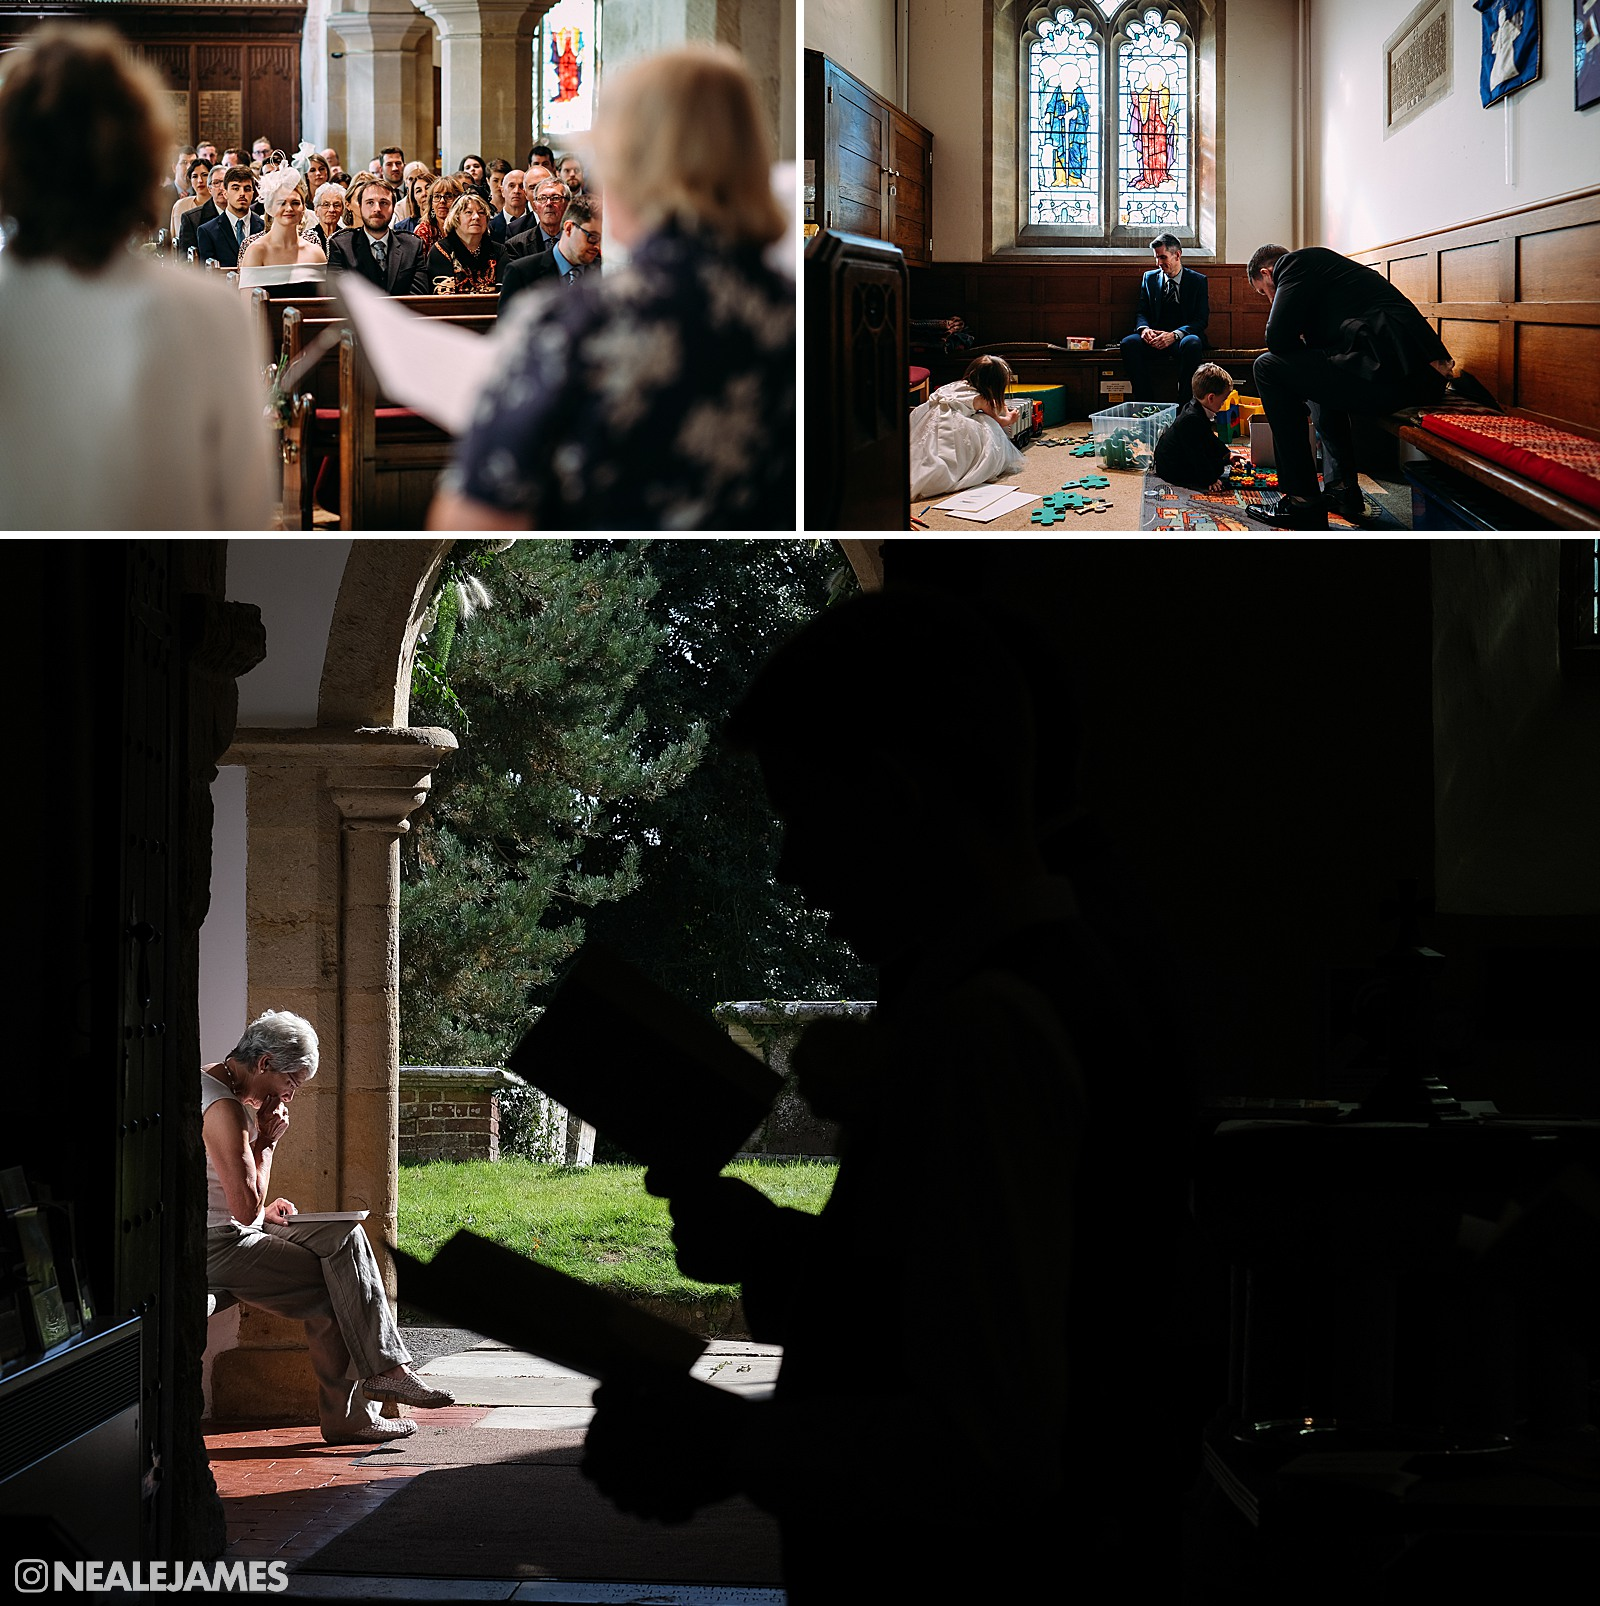 Typical church scenes at an English countryside wedding